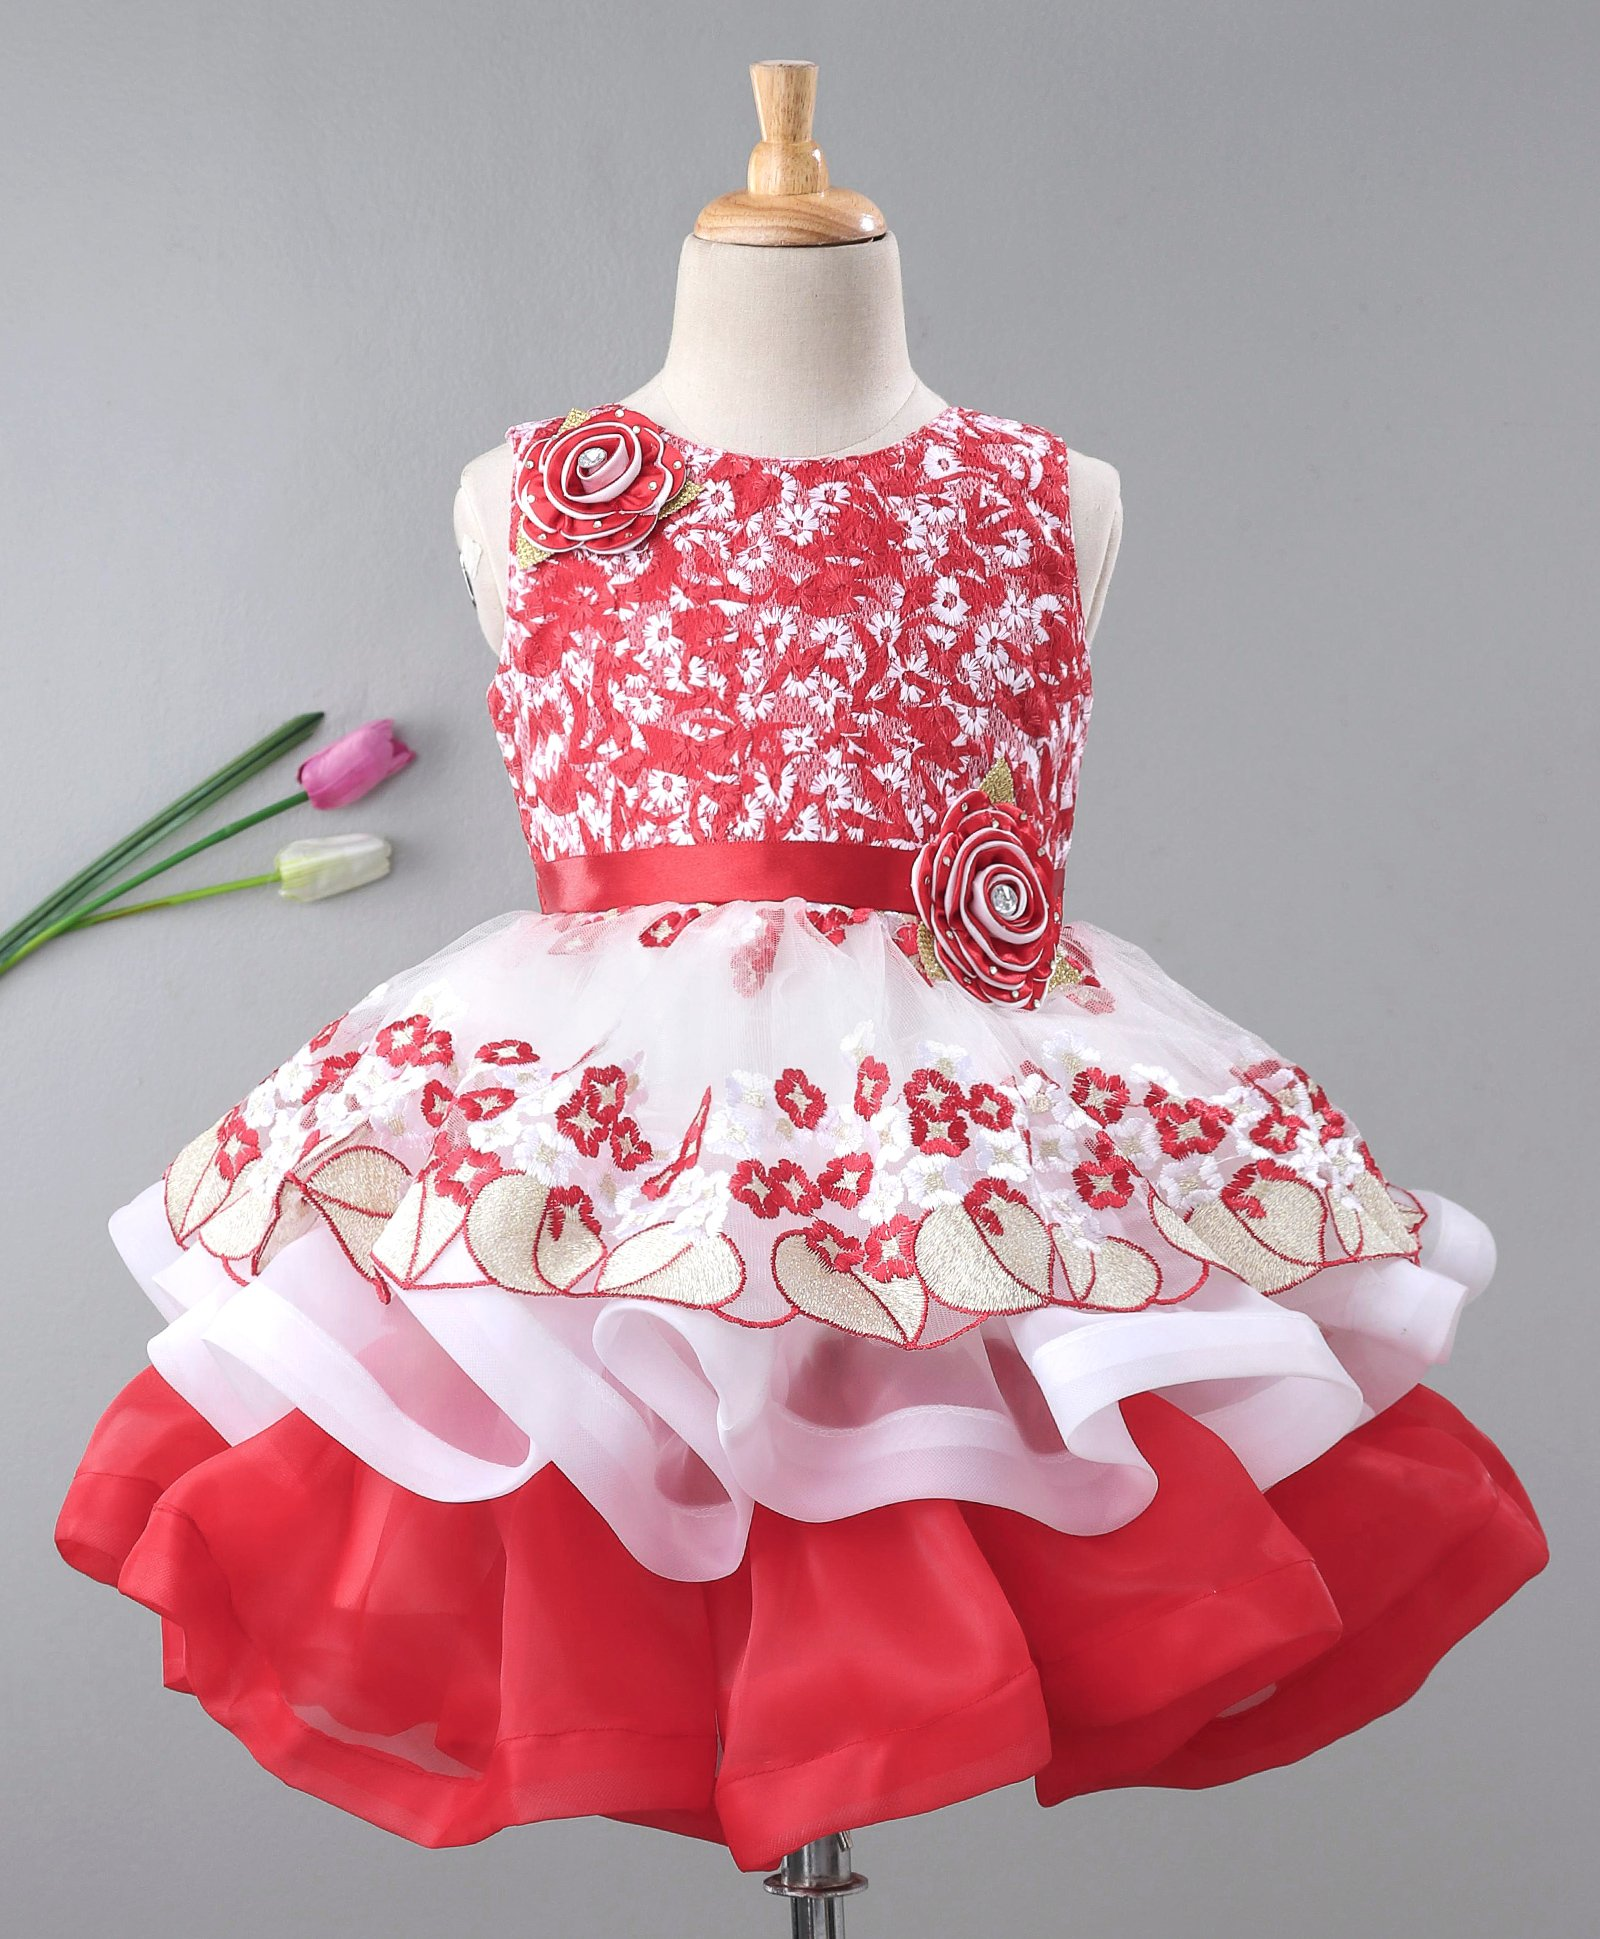 0a82e2dc748e0 Buy Enfance Flower Embroidered Sleeveless Flare Dress Red for Girls (2-3  Years) Online in India, Shop at FirstCry.com - 2484544